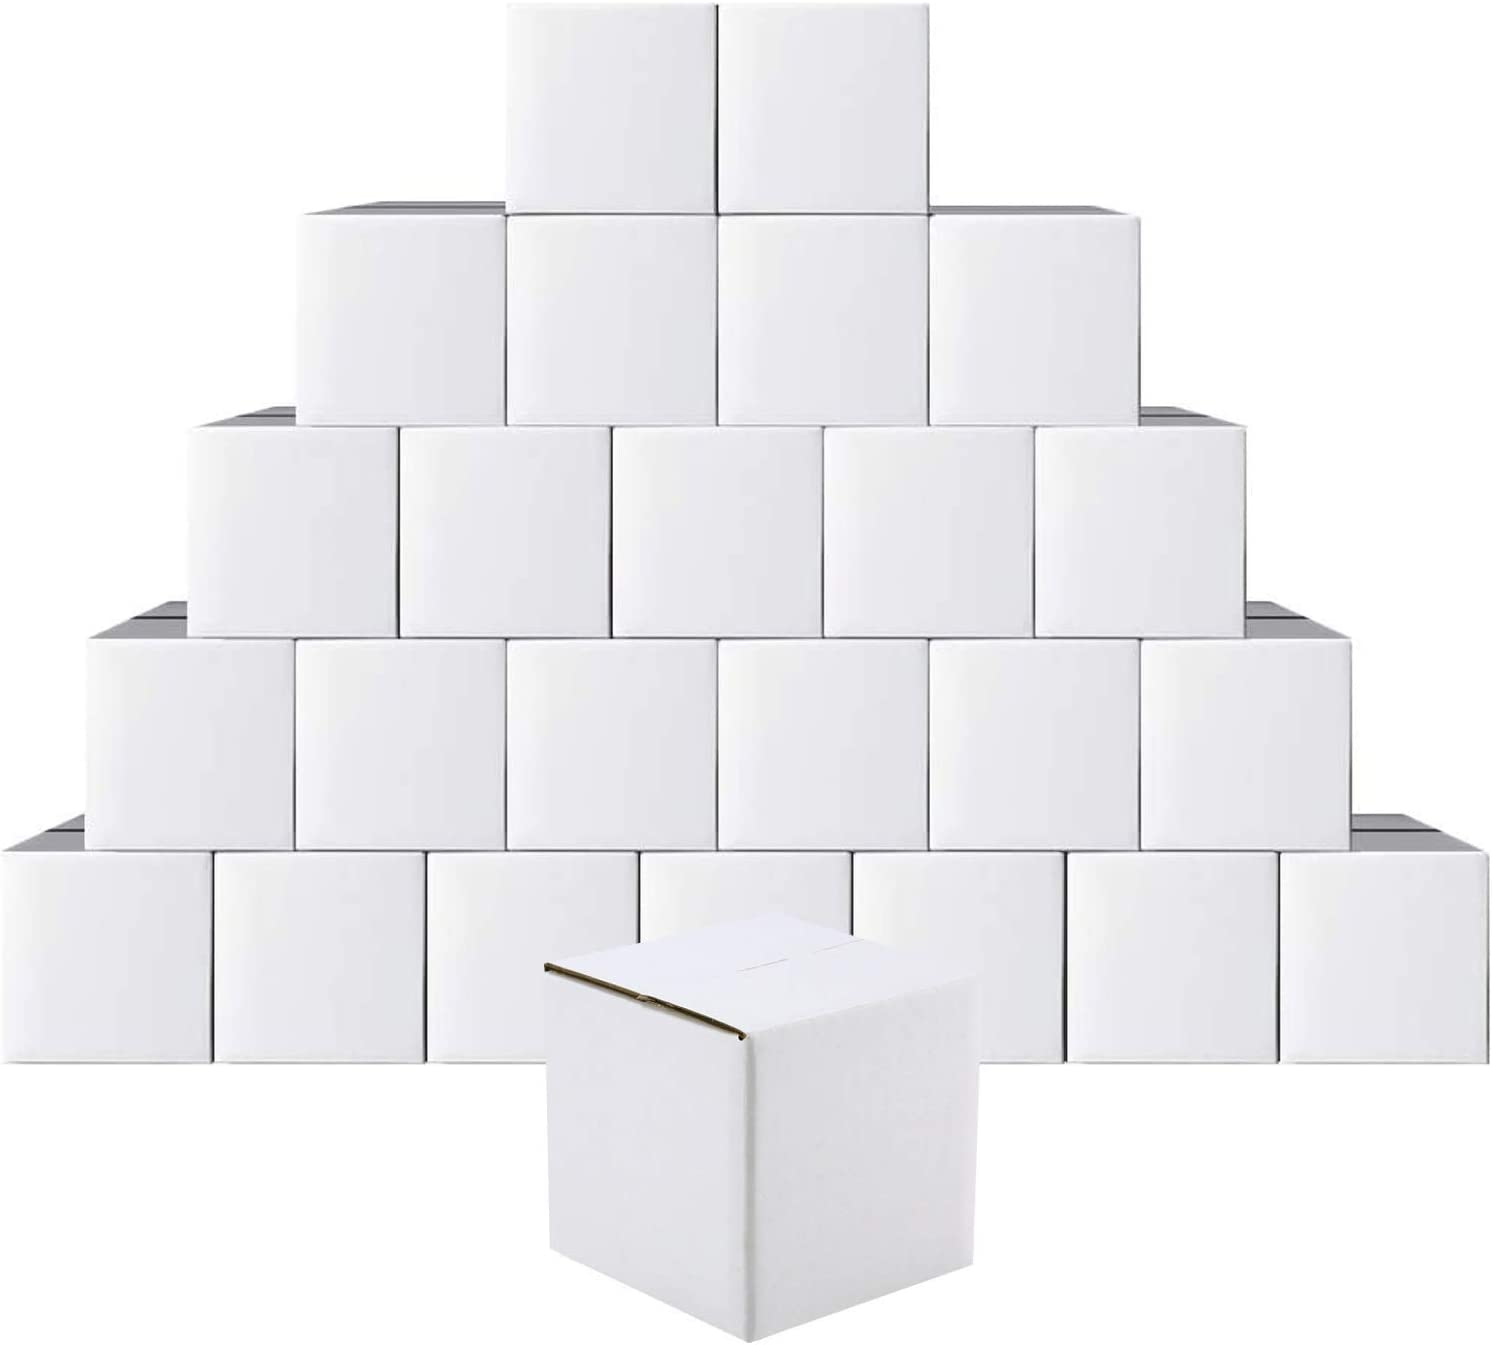 MUKOSEL 5x5x5 Columbus Mall Inches White Cardboard of Shipping 25 Pack Boxes Fort Worth Mall